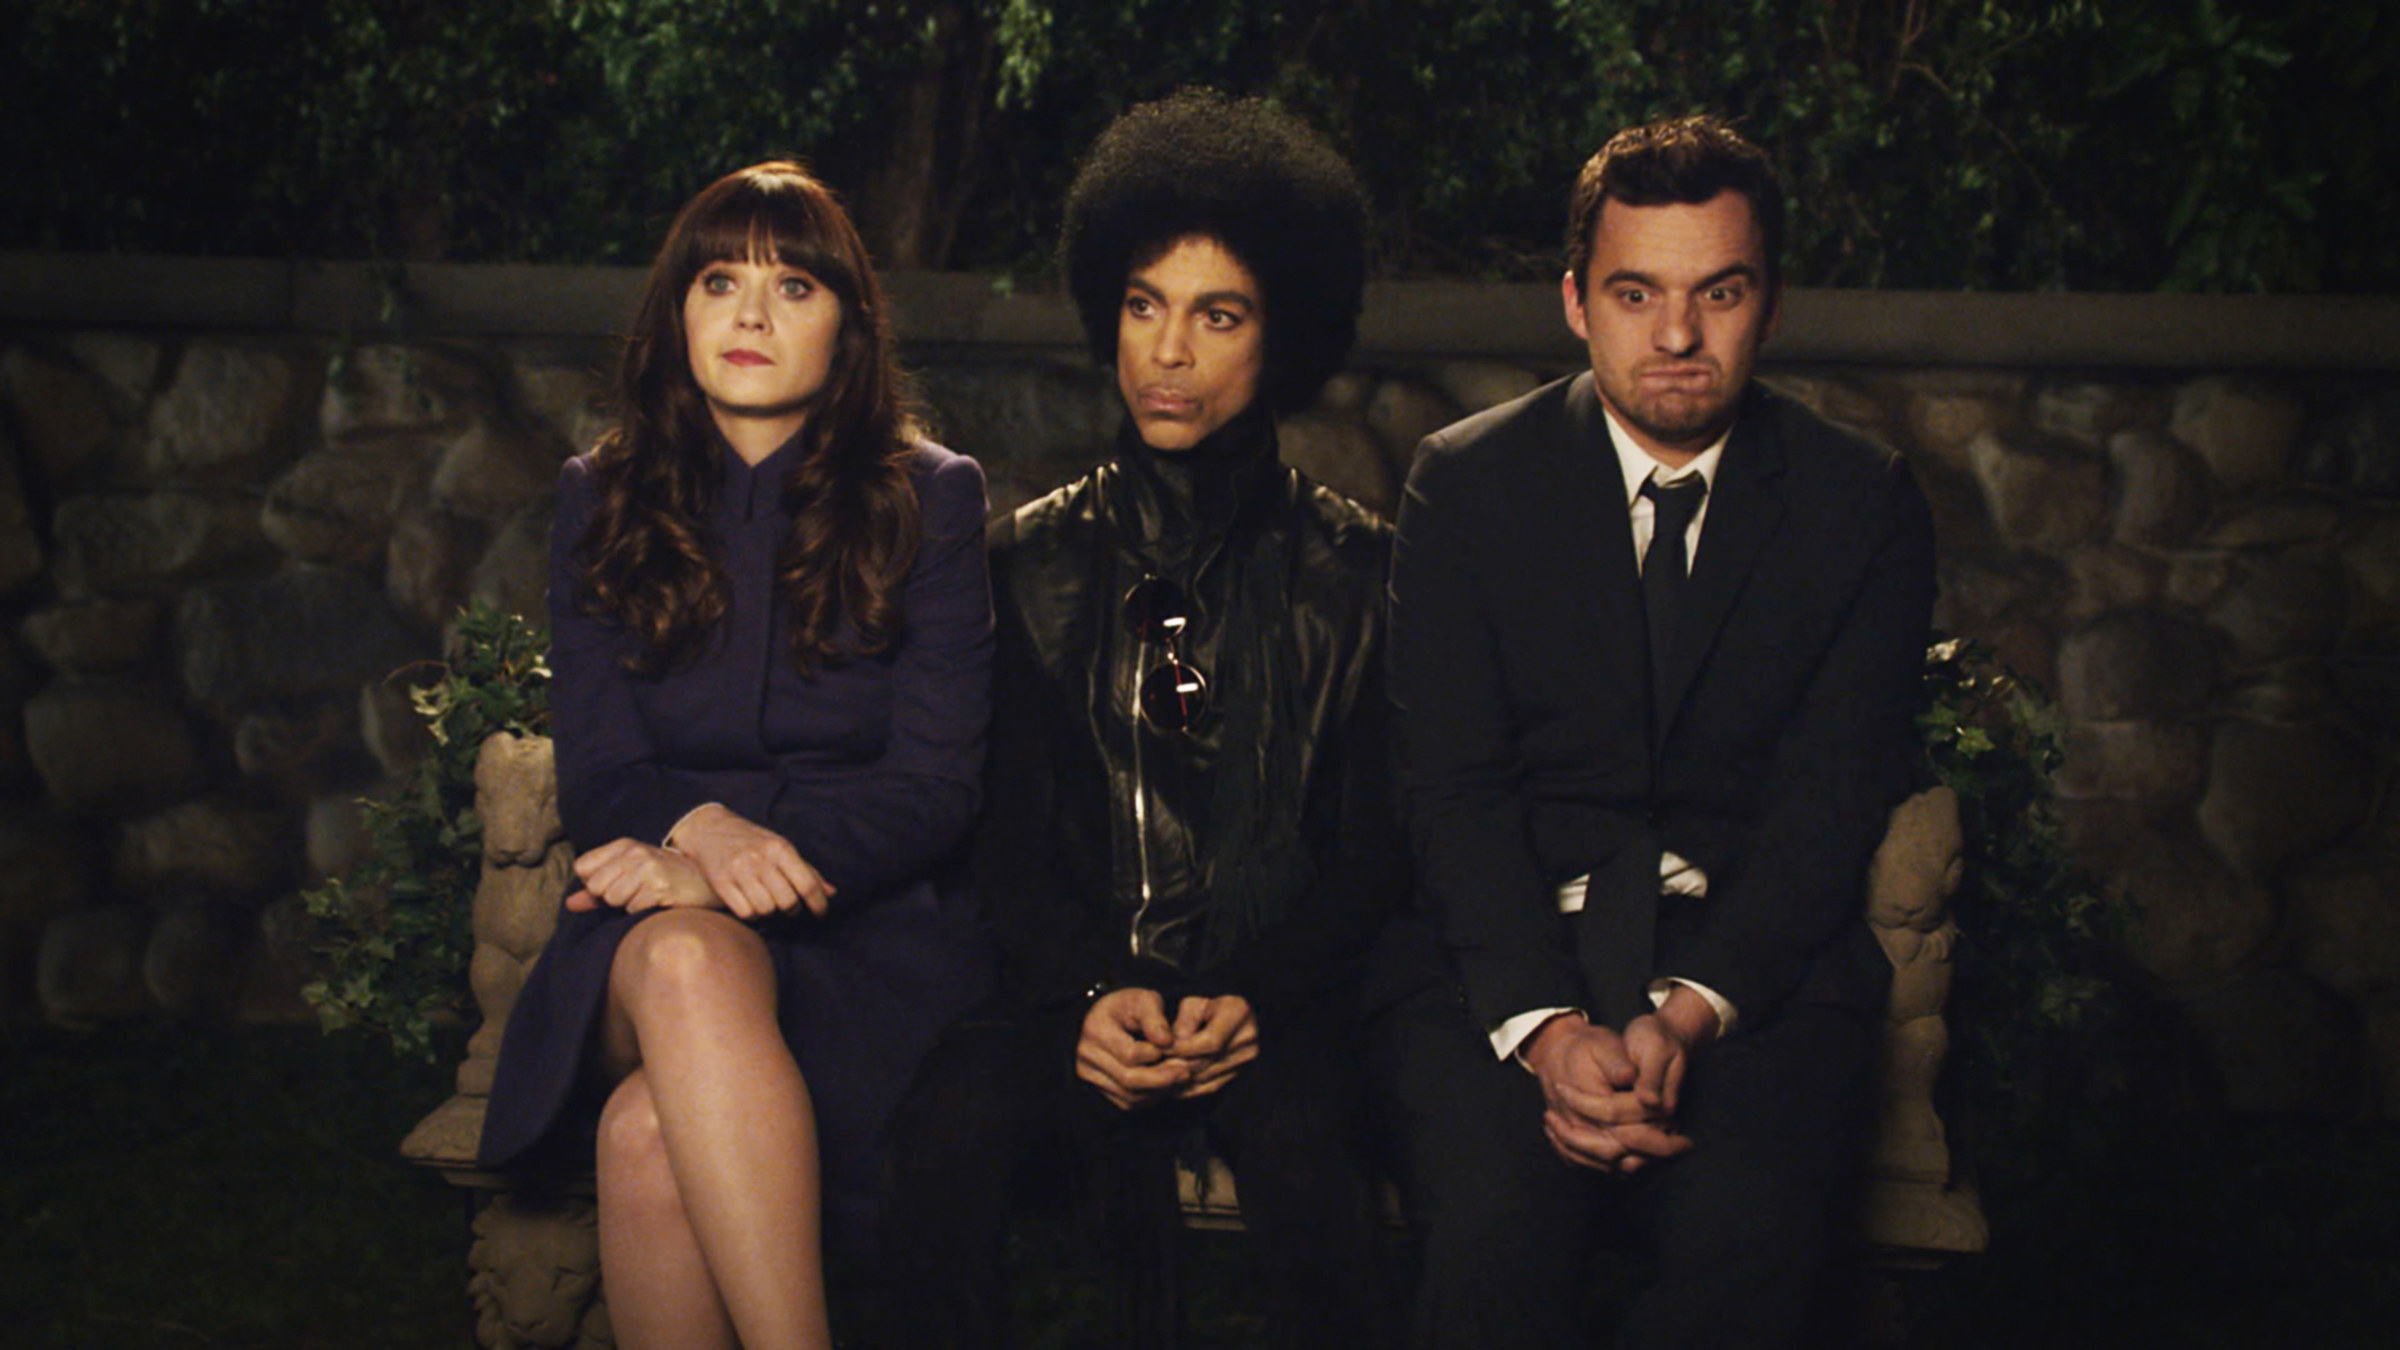 Zooey Deschanel, Prince, and Jake Johnson during Prince's episode